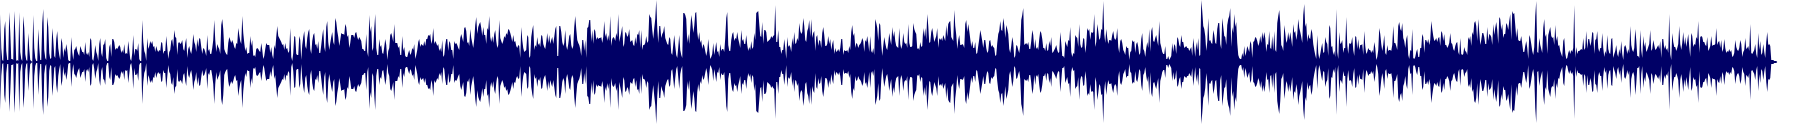 waveform of track #48005